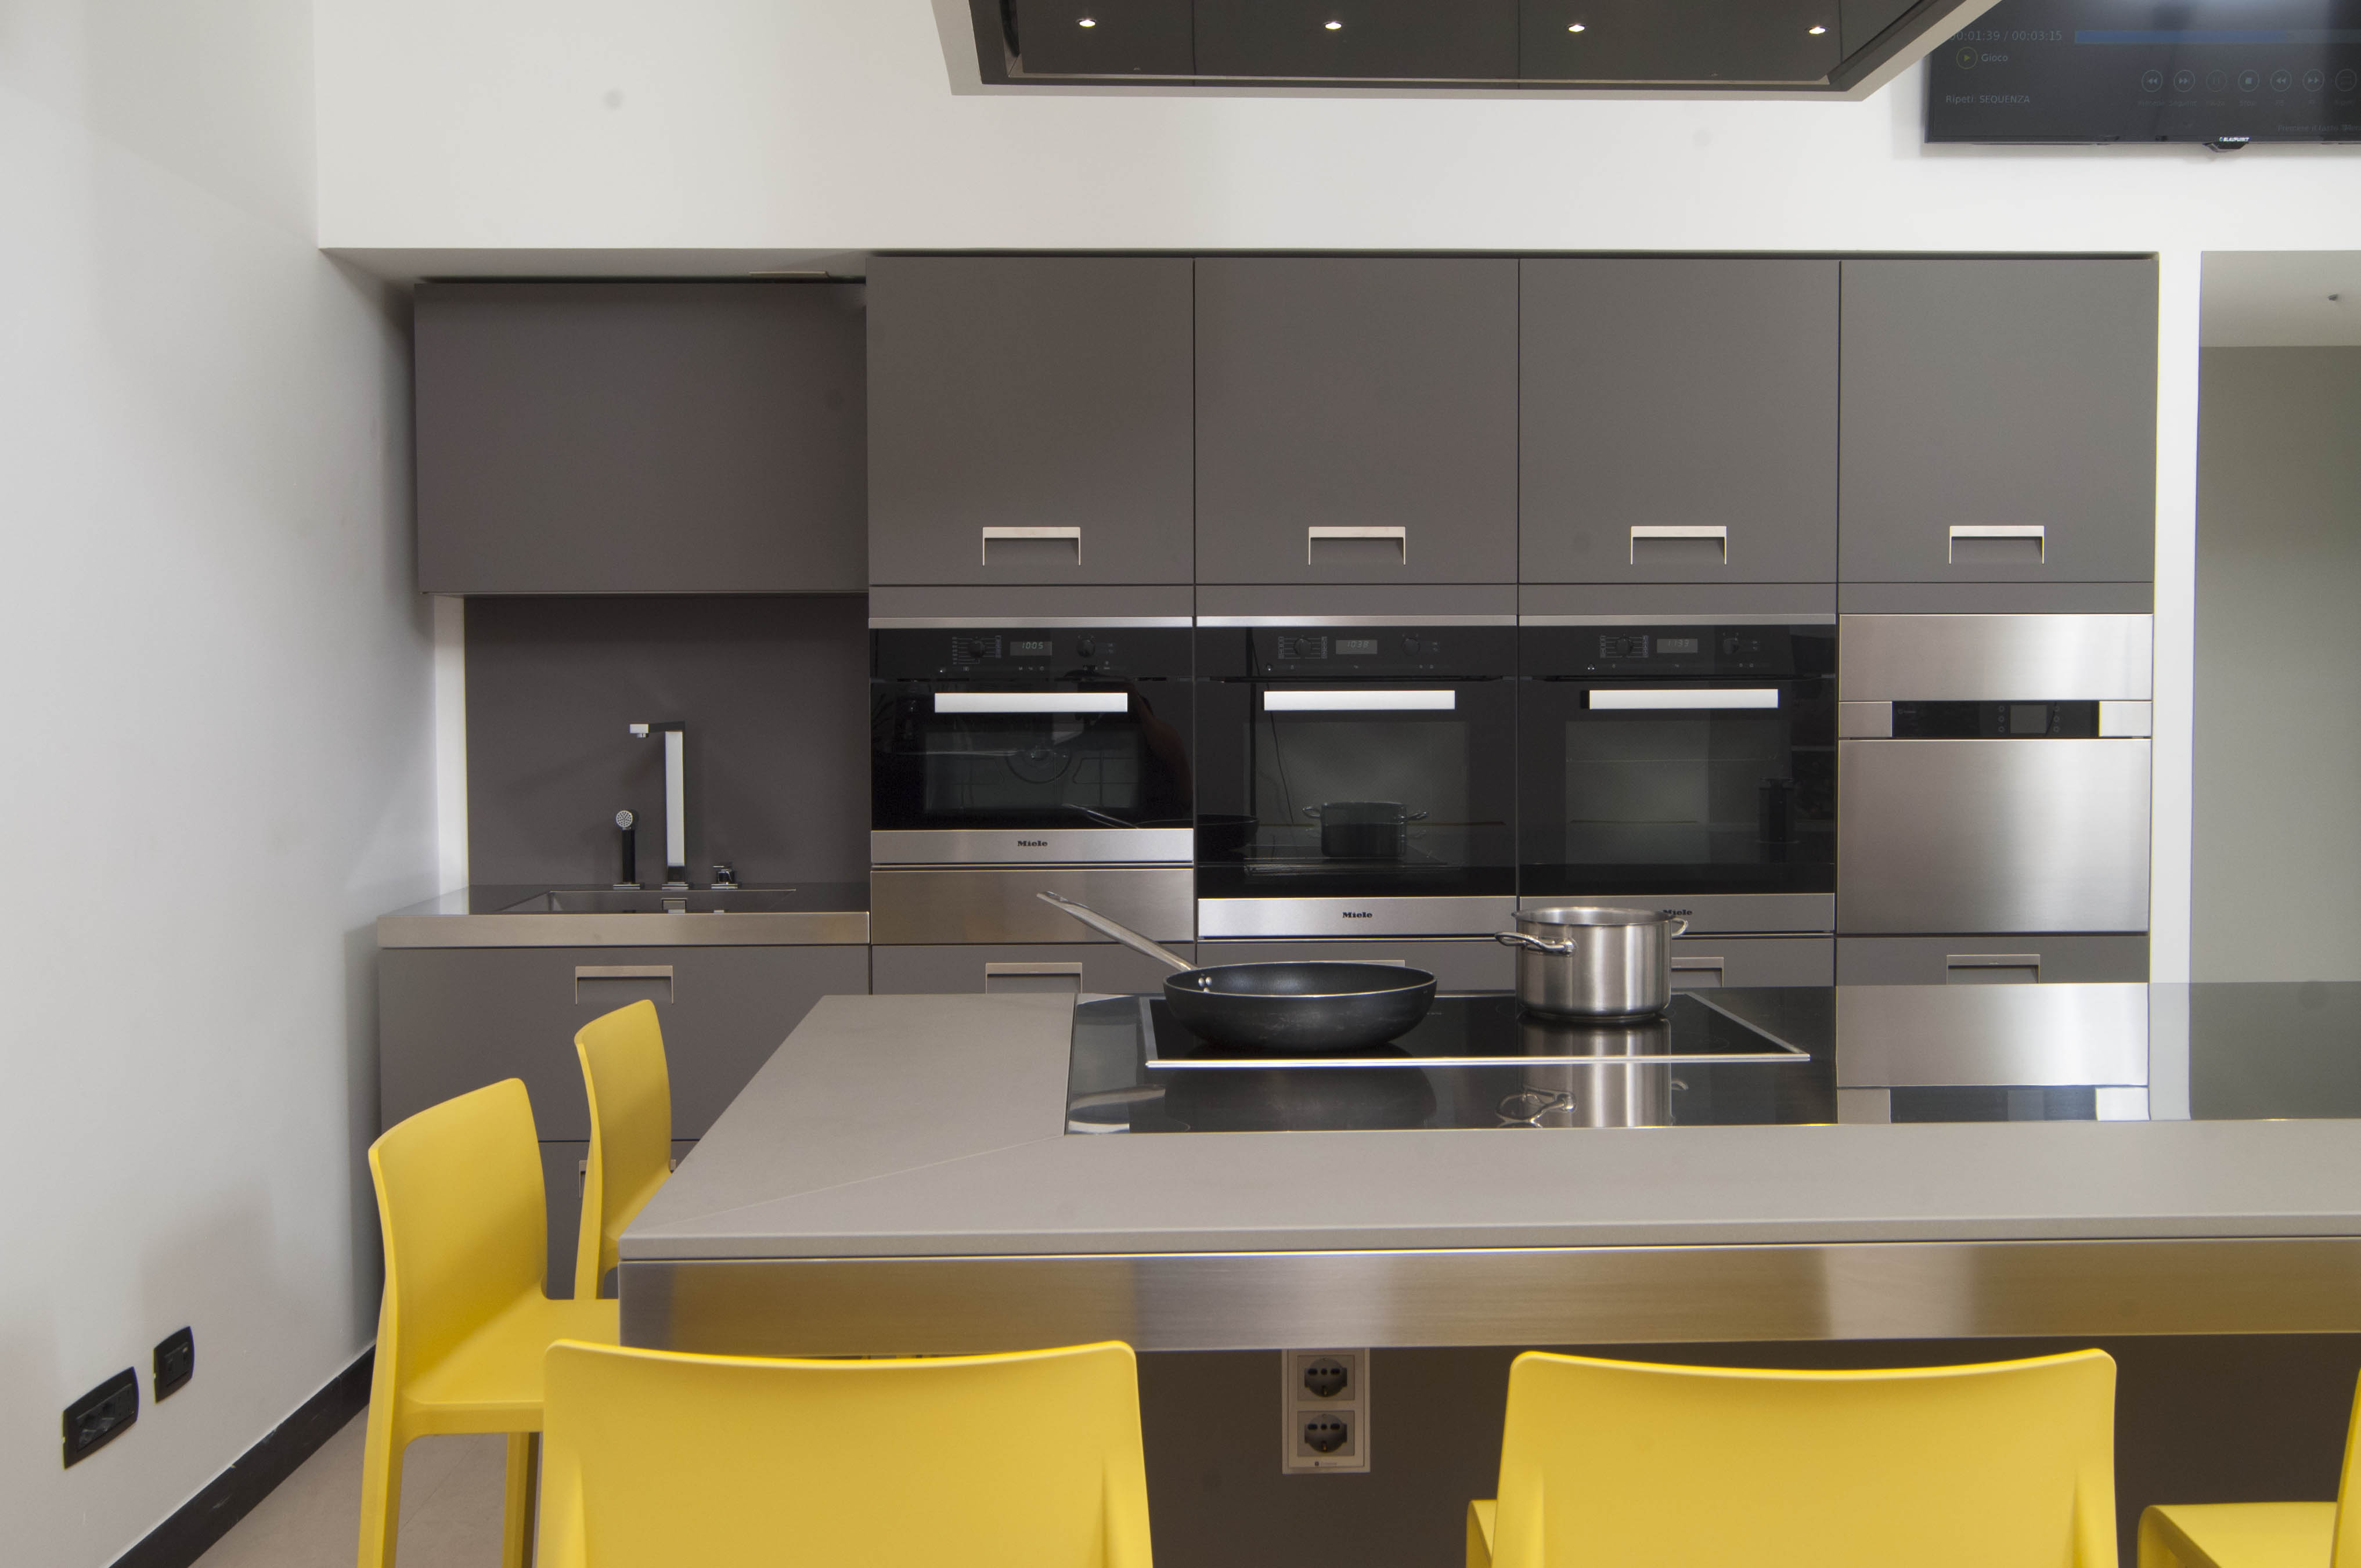 miele kitchen appliances back splash protagonist of the italian chef cooking school